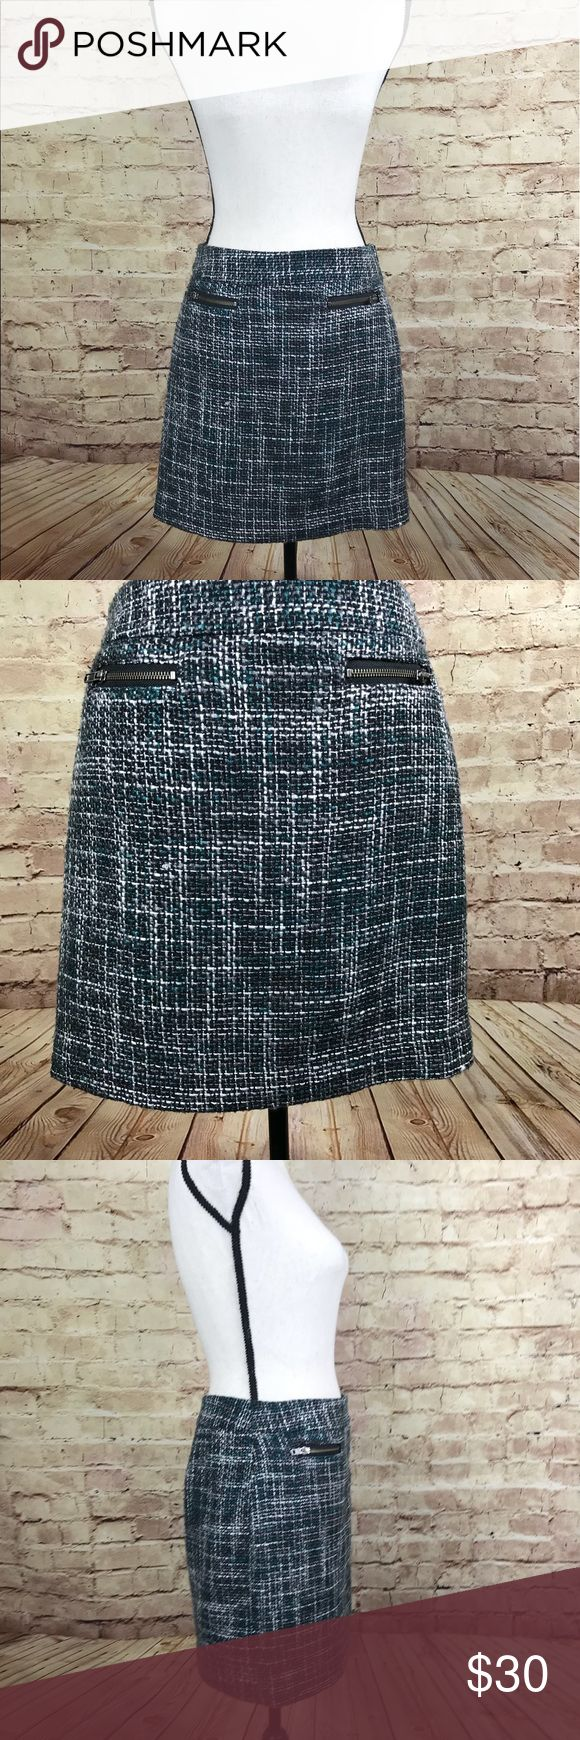 Ann Taylor Loft Career Black Green Skirt Size 4P This skirt features a hidden size zipper, and two front pockets.   Approximate measurements: waist 30 inches; length 16.5 inches. LOFT Skirts Pencil